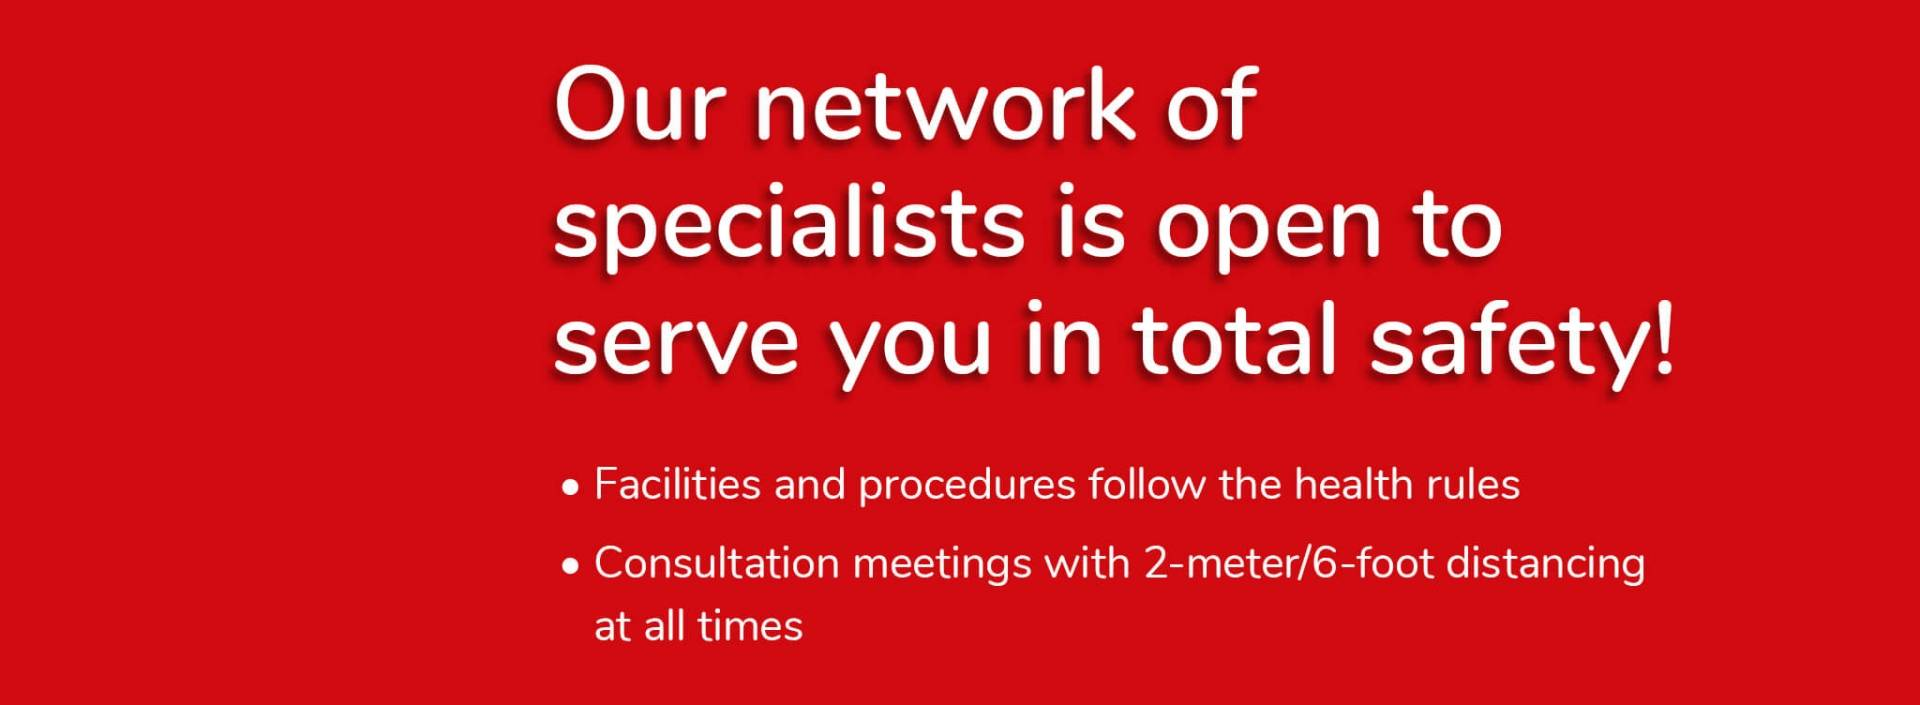 Our network of specialists is open to serve you in total safety